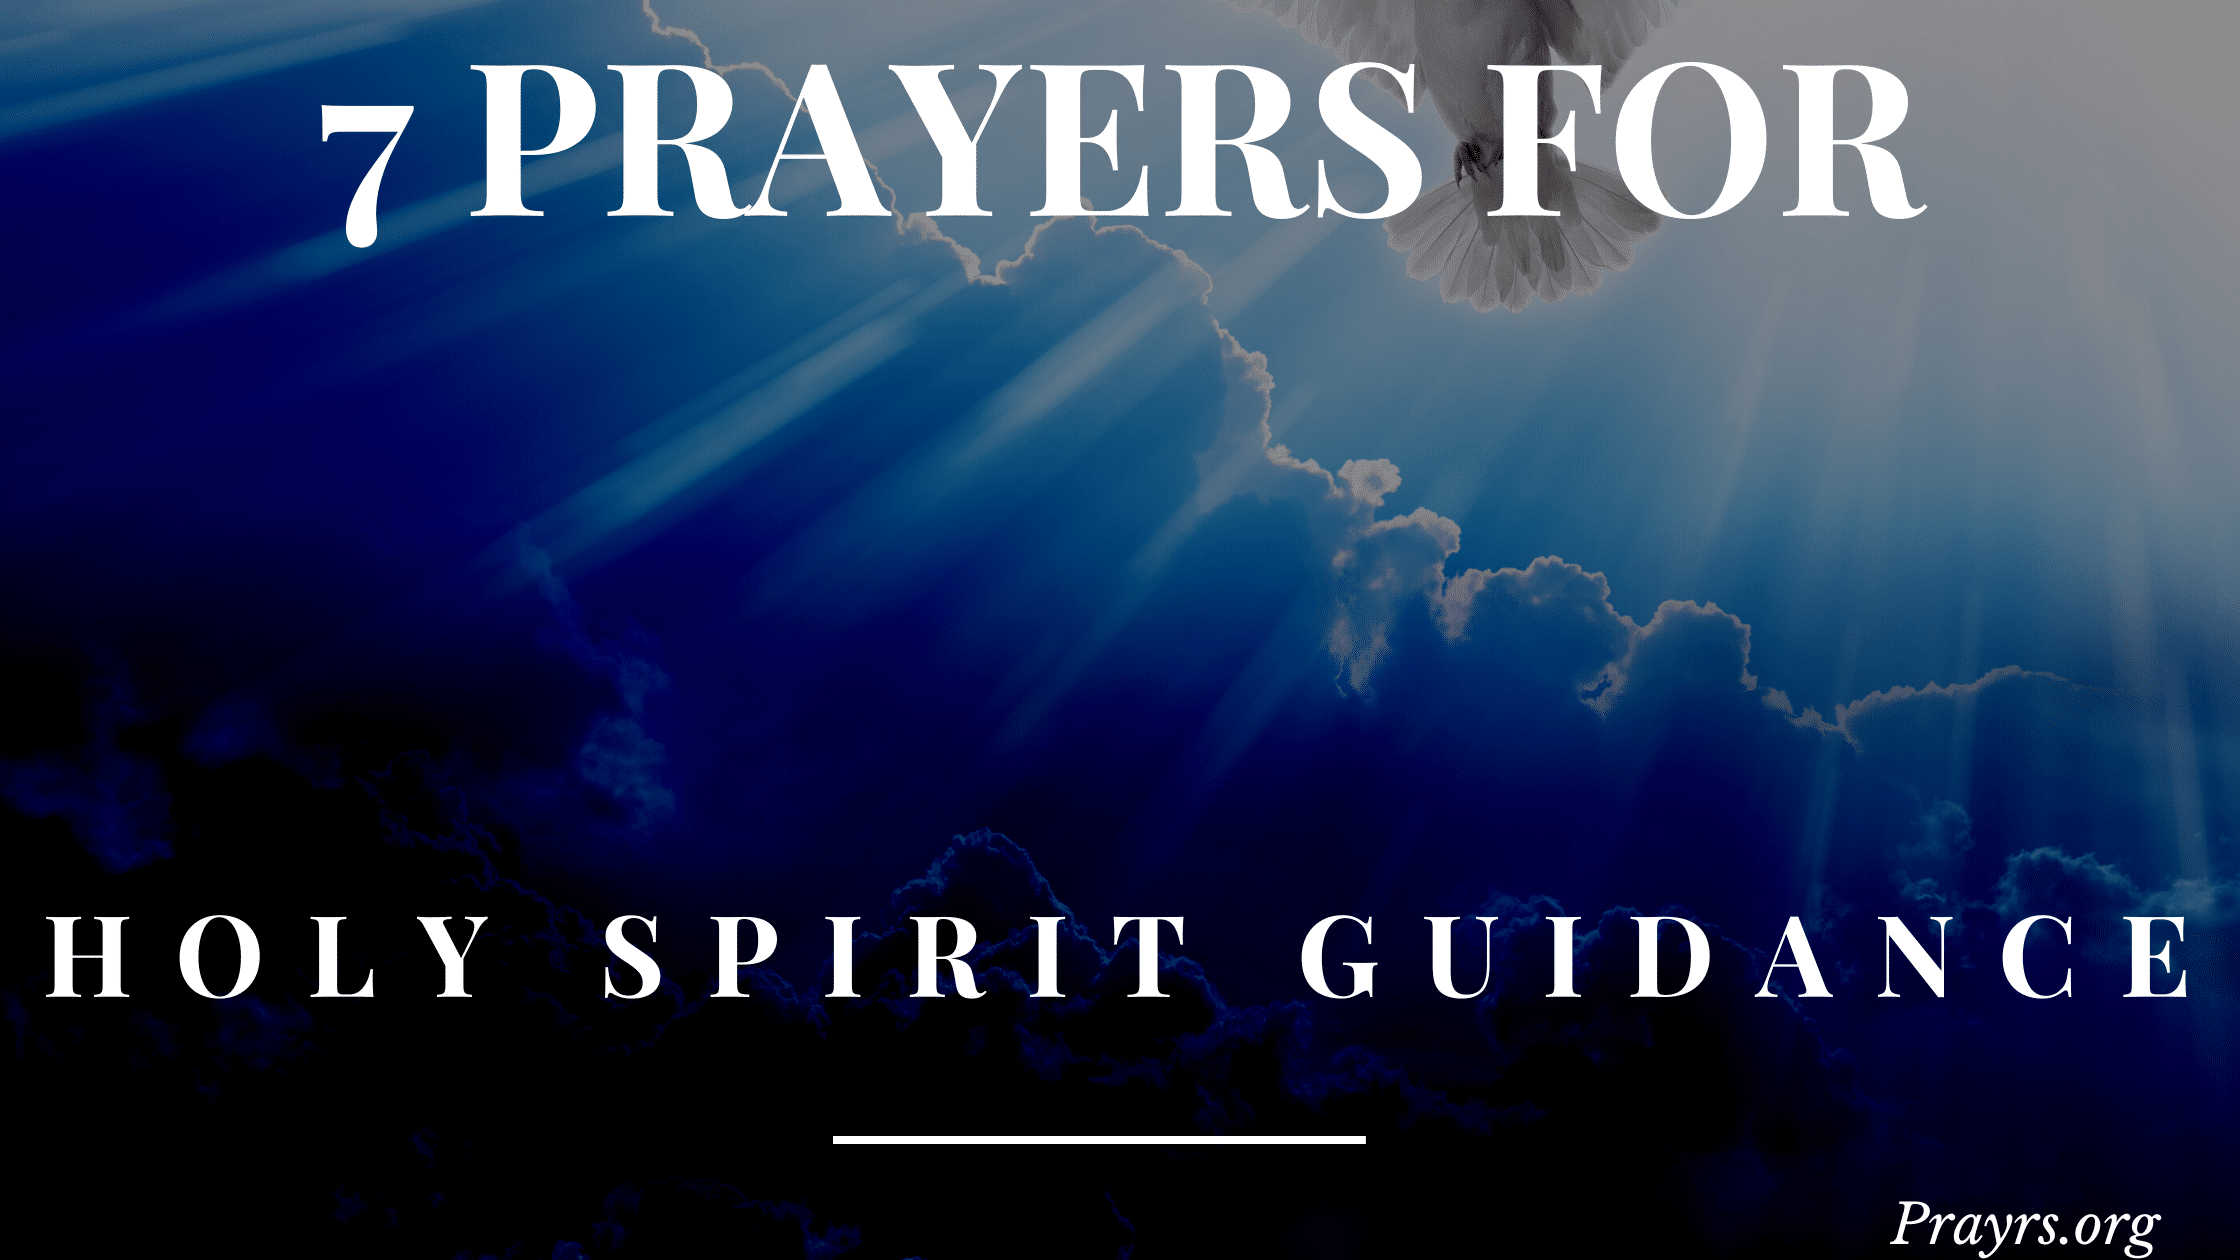 Prayers to the Holy Spirit for Guidance